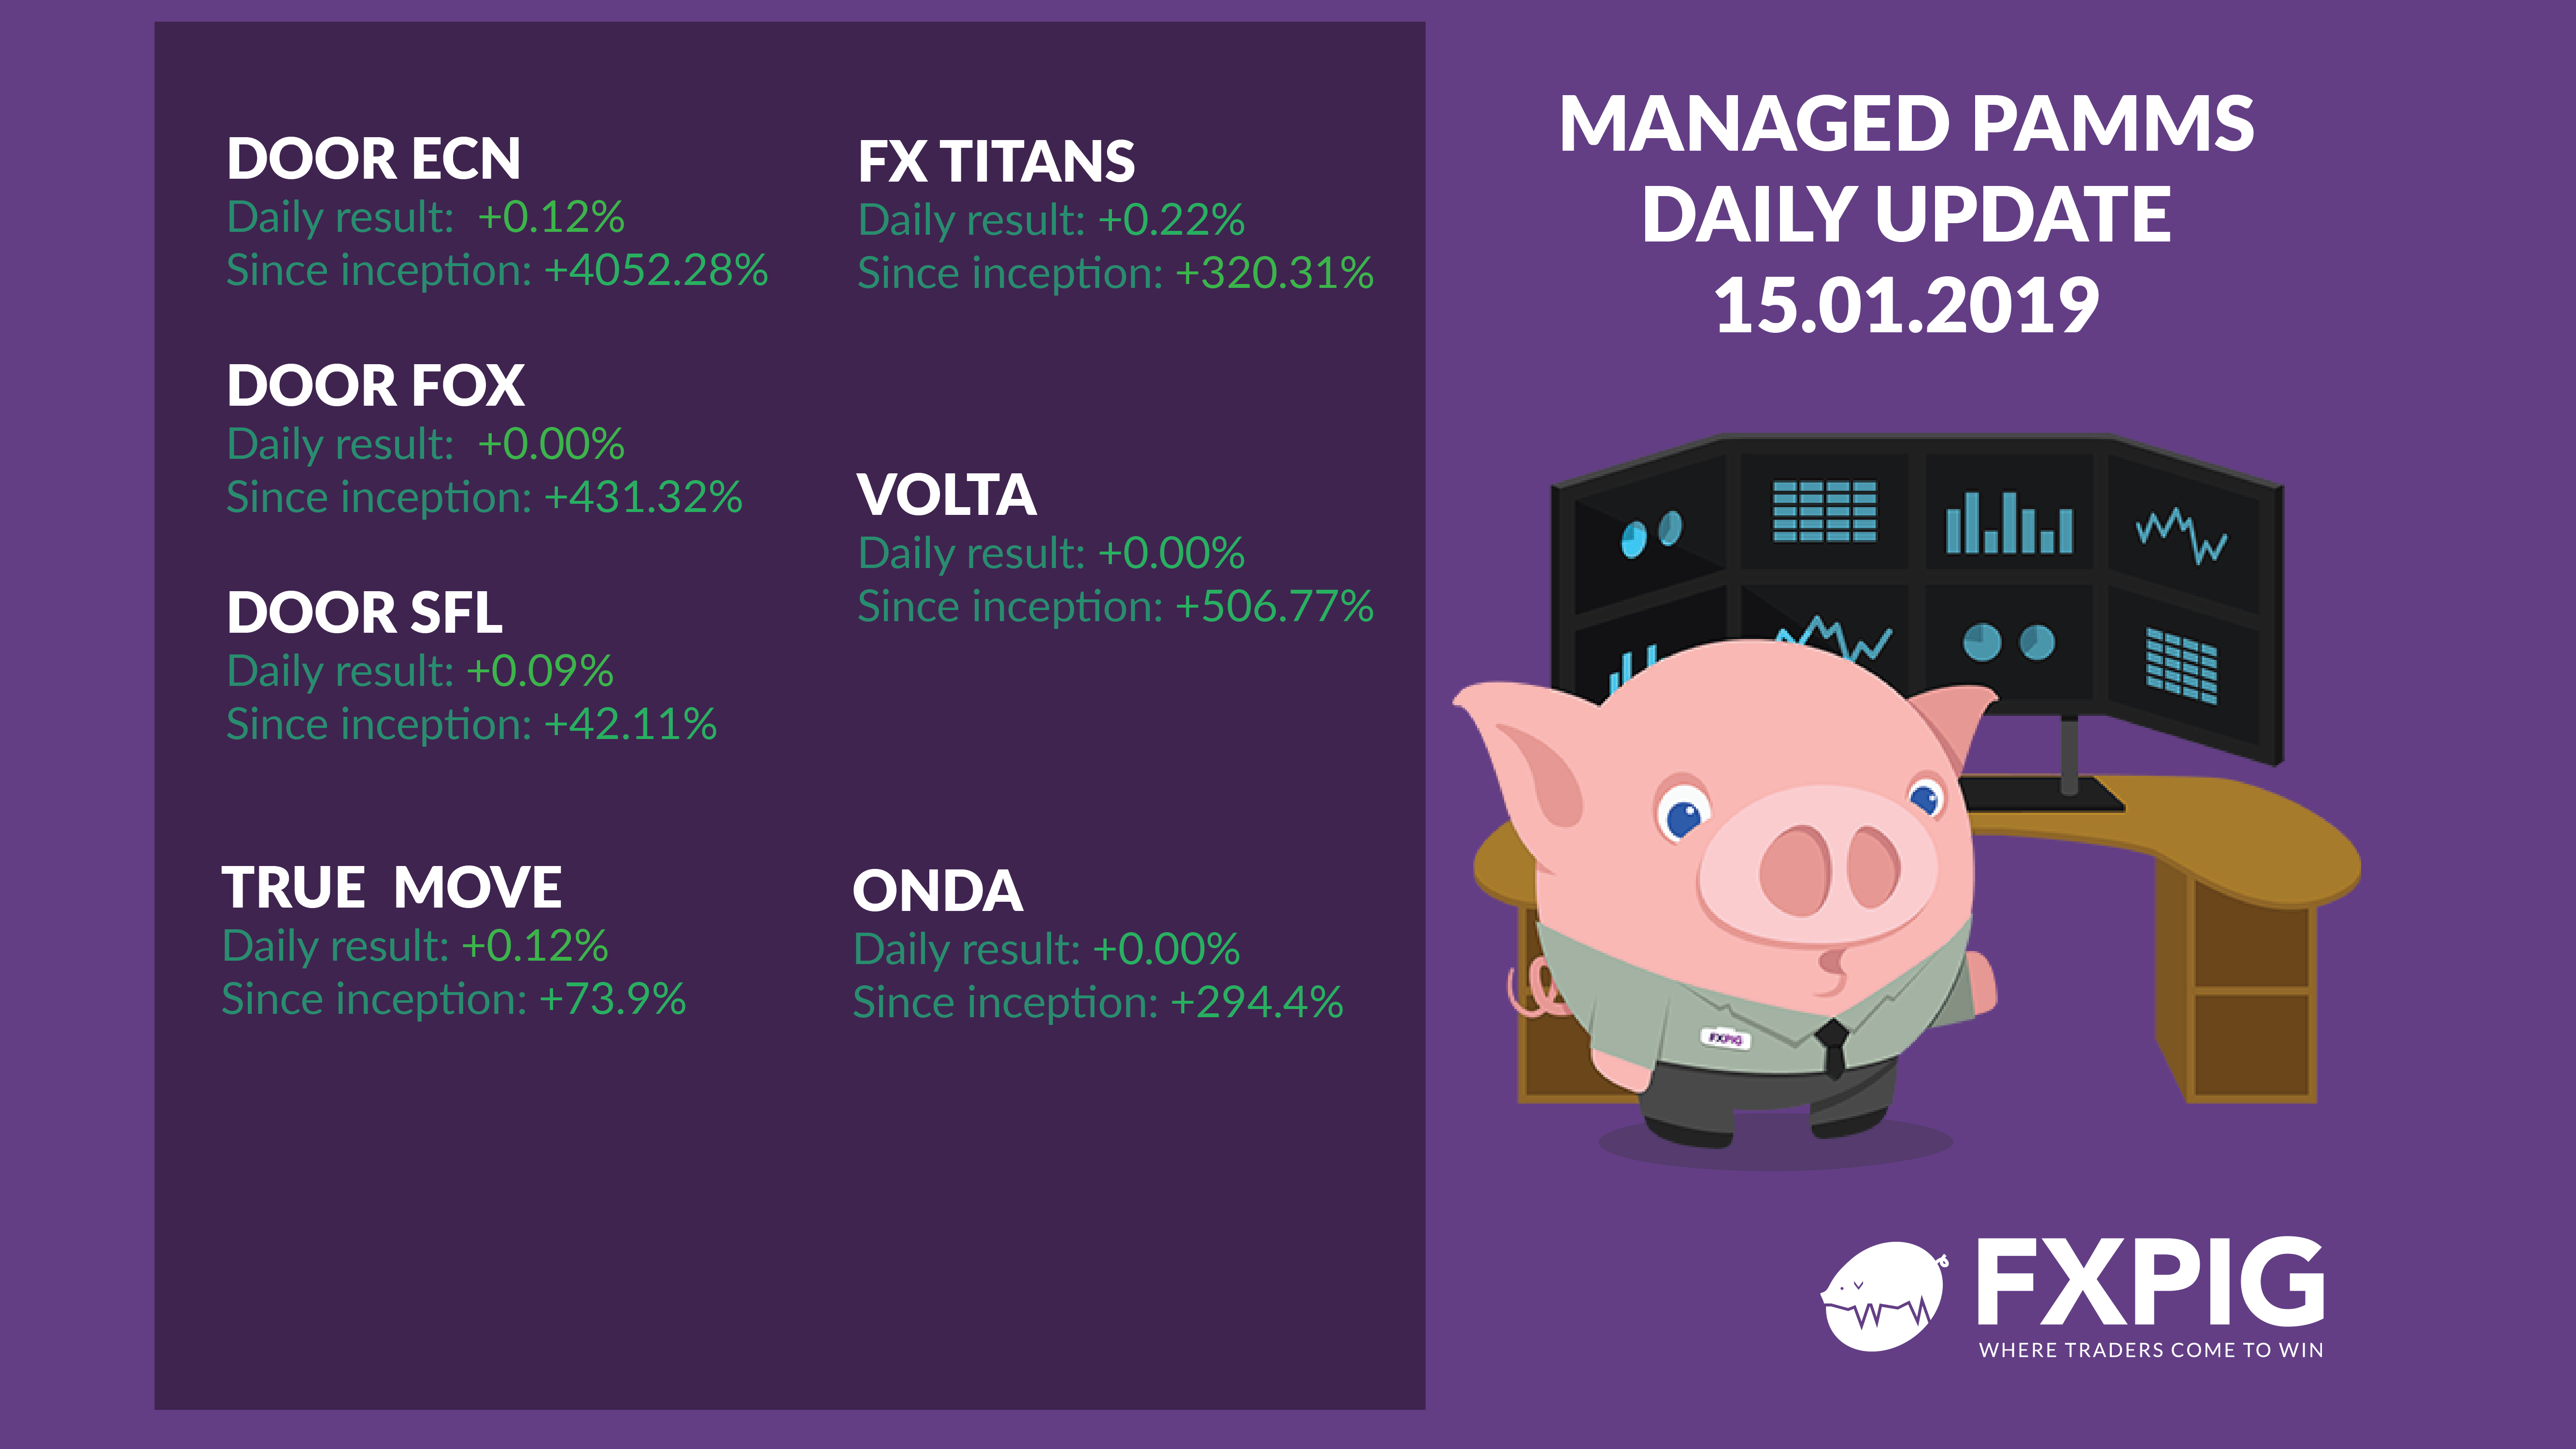 Forex_Trading_Fx_Trader_FXPIG_PAMMS_MANAGED_ACCOUNTS_PROFIT_15.01.2019